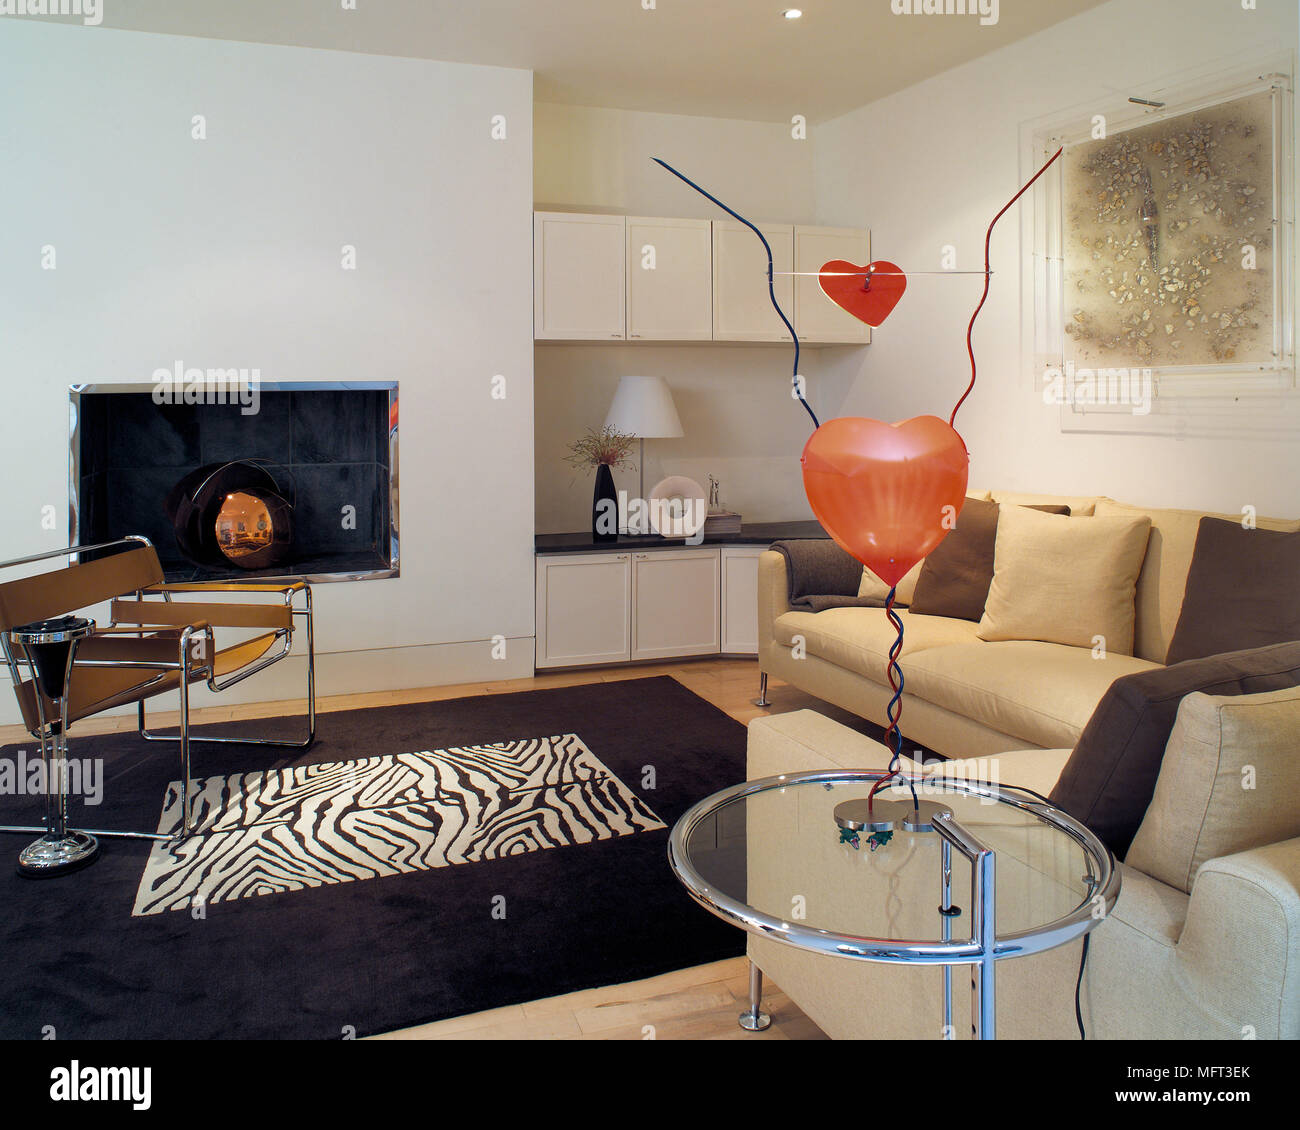 Marcel Breuer Wassily chrome and leather chair in front of contemporary recessed fireplace with Eileen Gray table in foreground - Stock Image